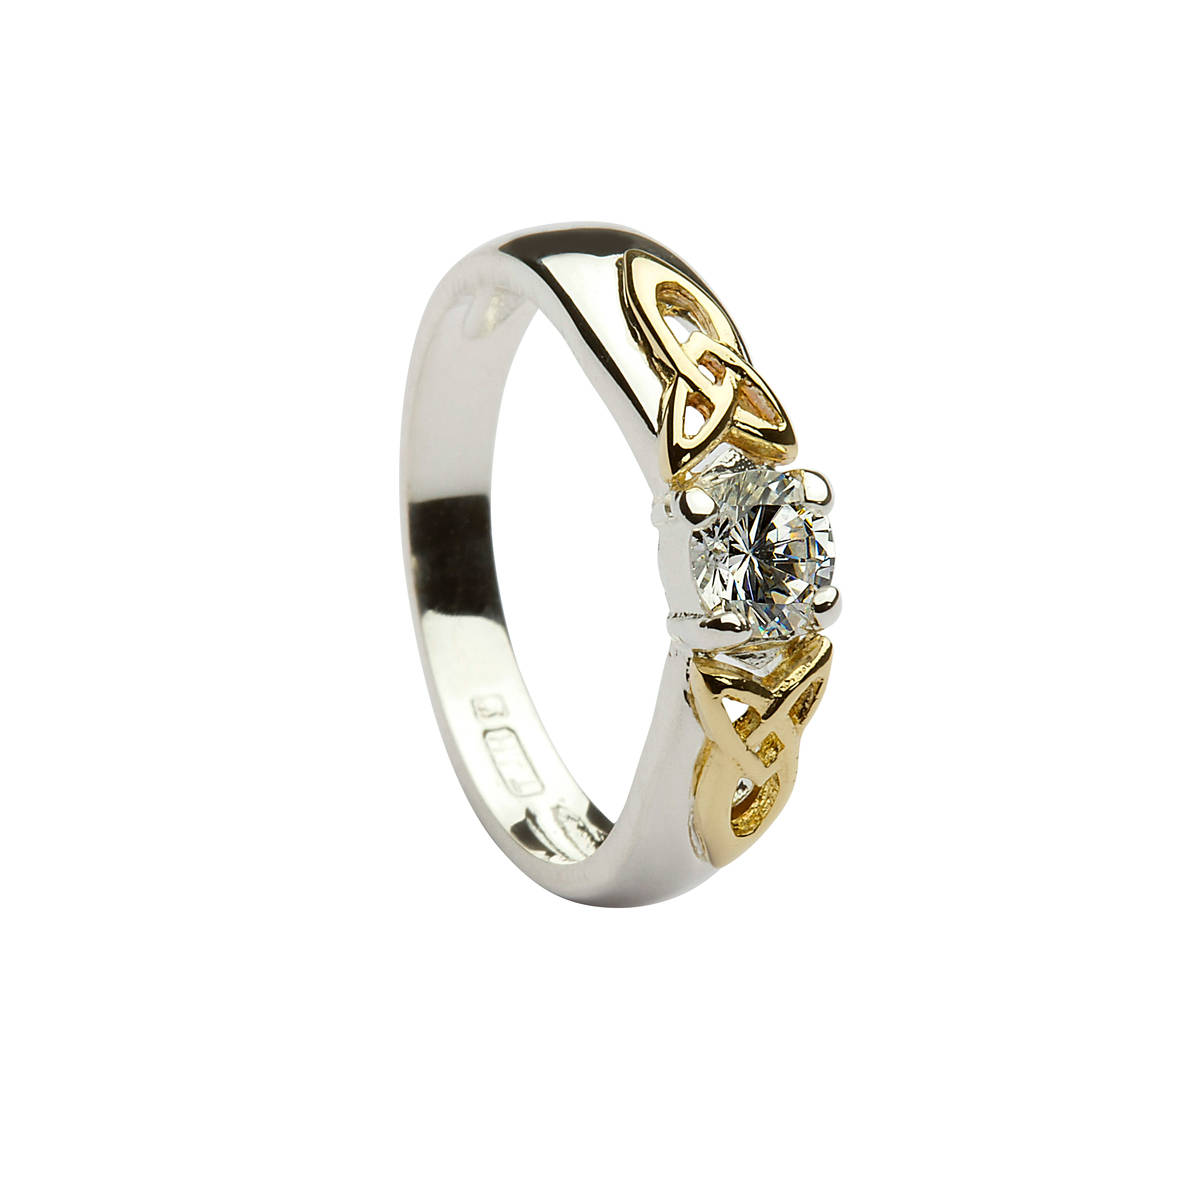 Silver and 10 ct yellow gold cubic zirconia stone ring